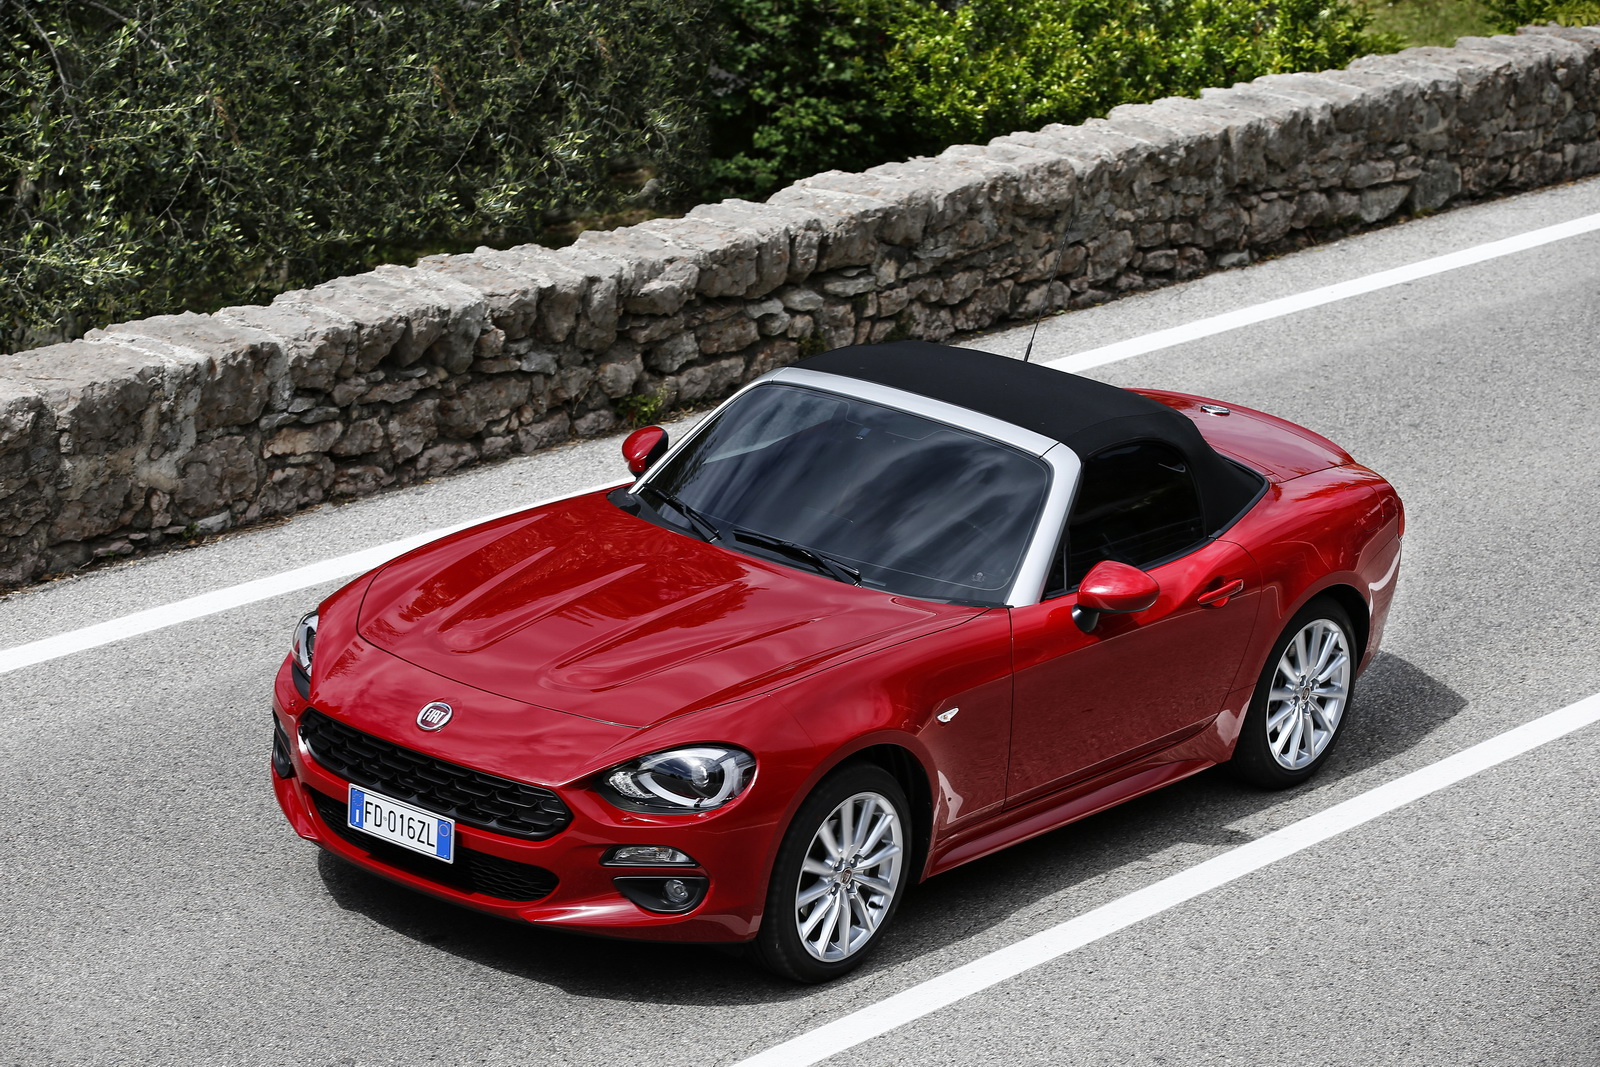 New fiat 124 spider priced from 19 545 in the uk for Fiat 124 spider motor